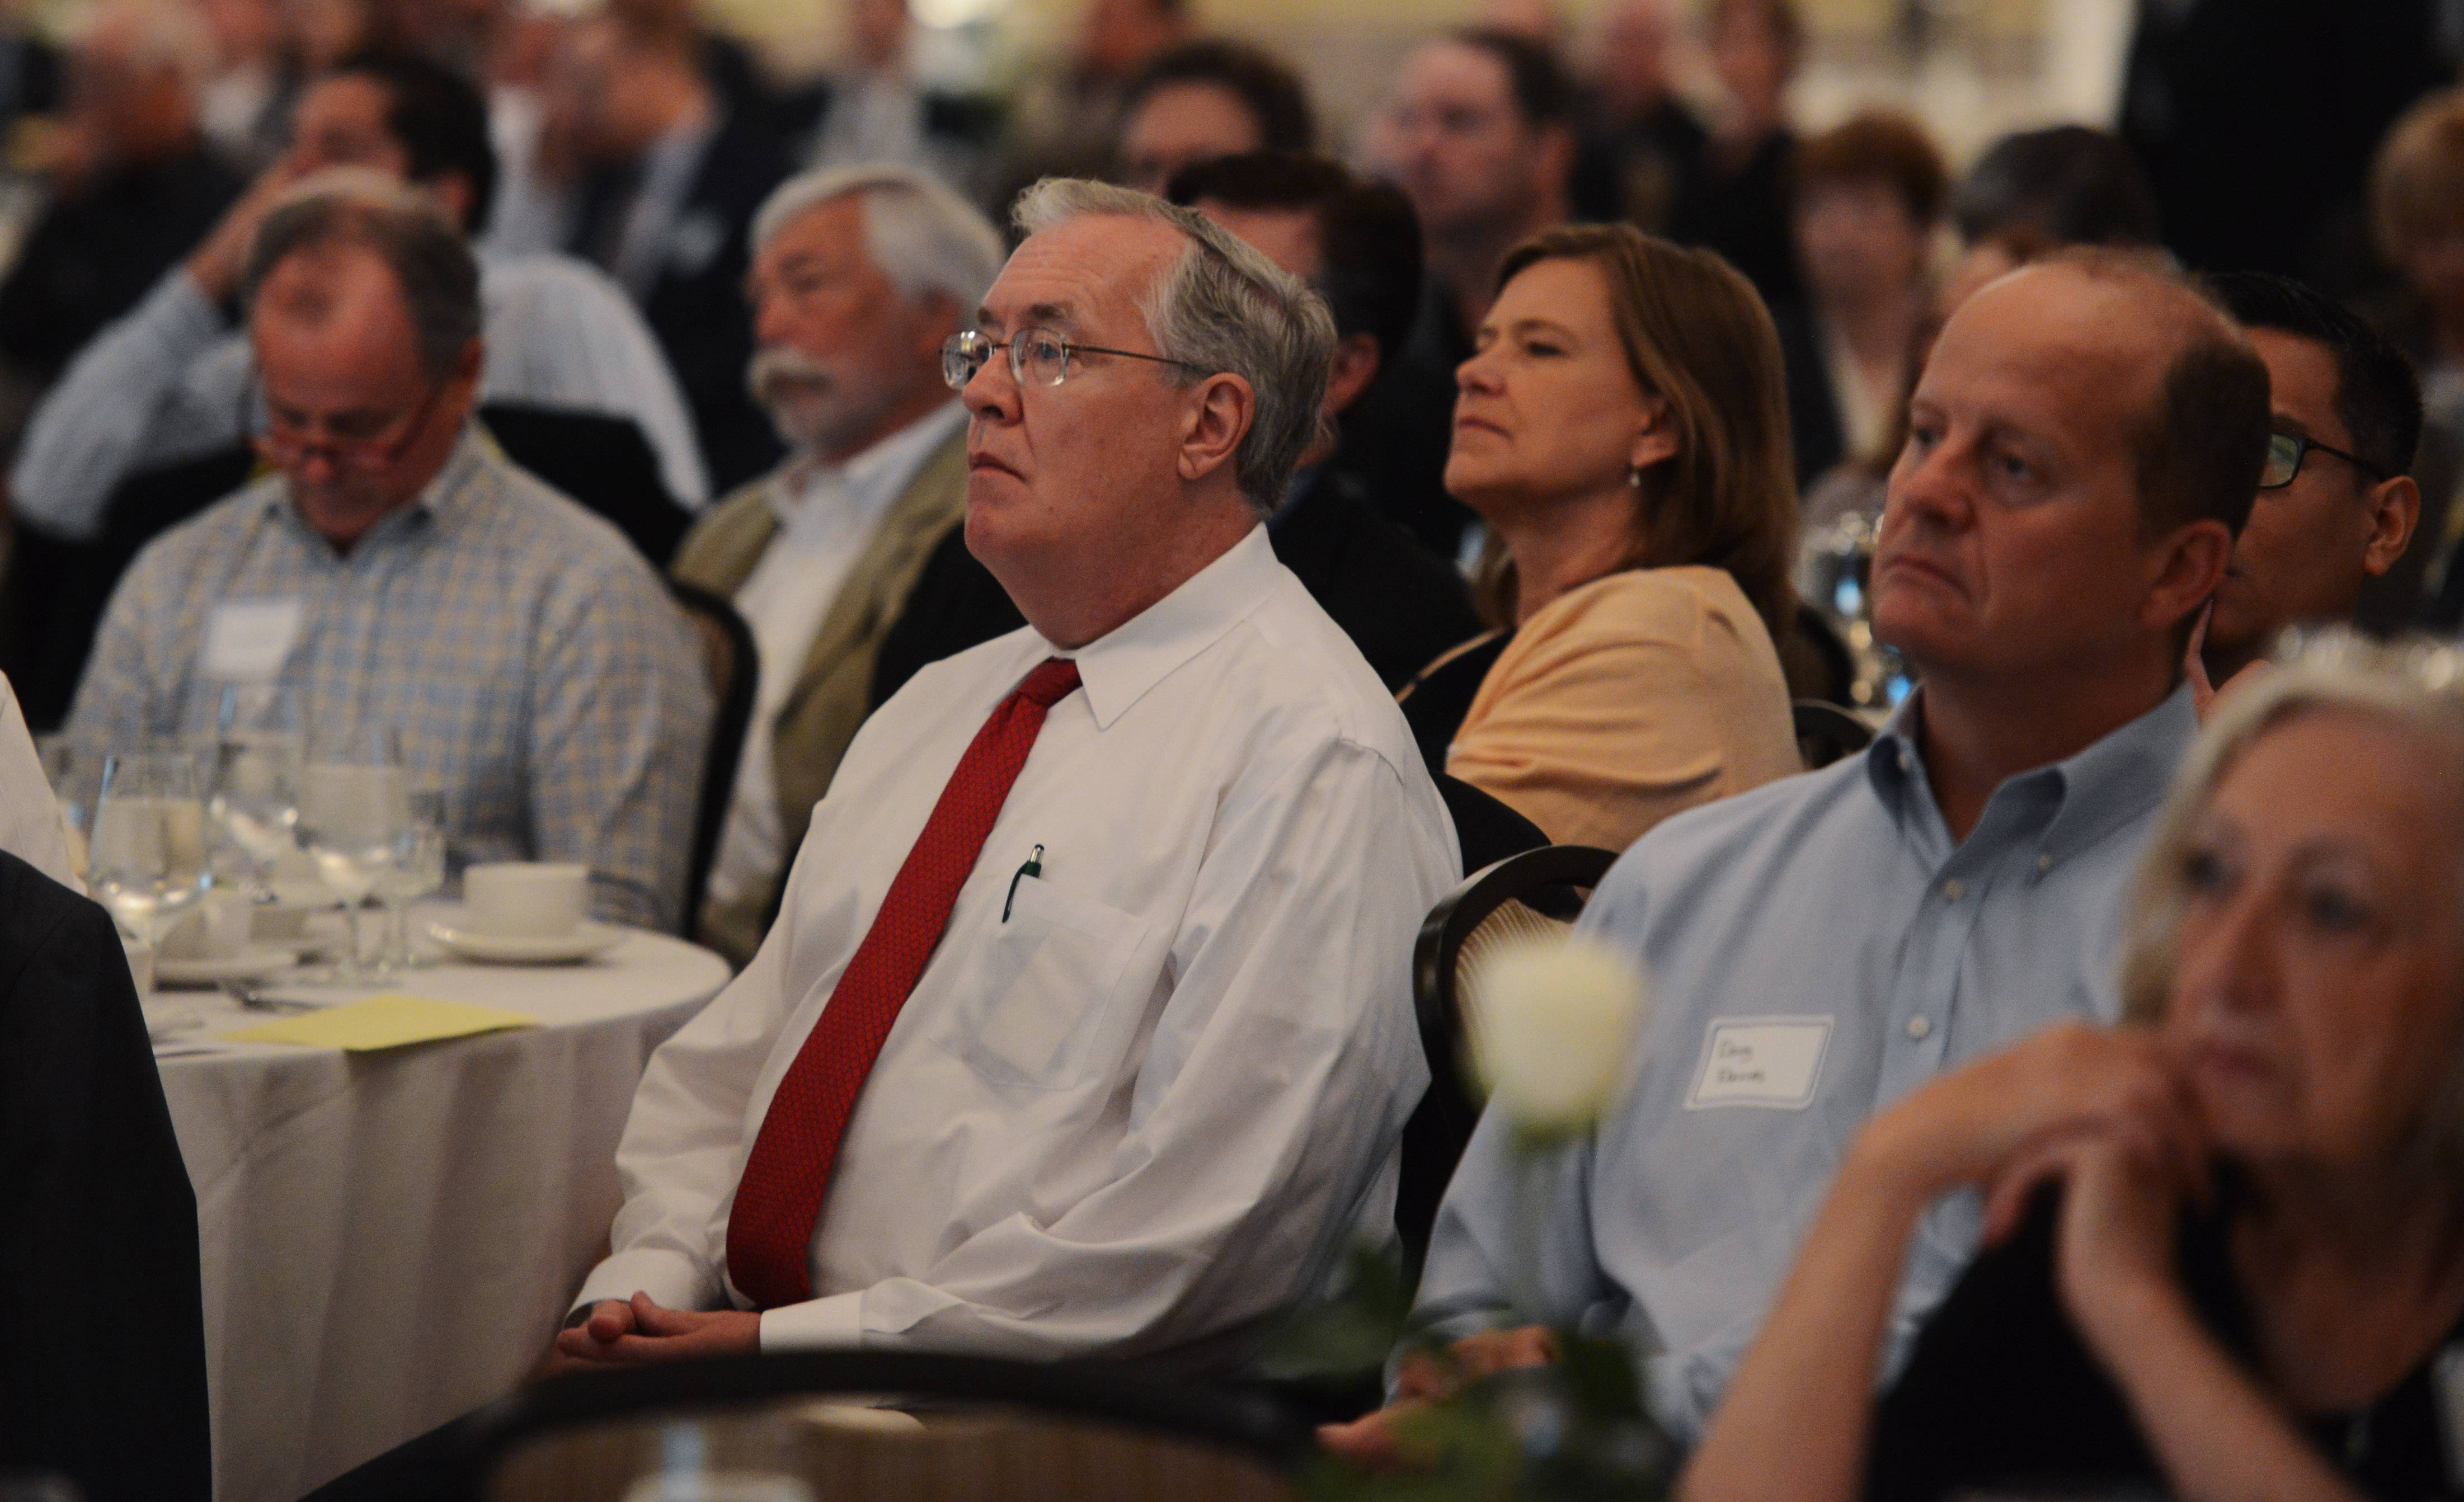 Guests listen to Robert Genetski speak at the 14th Annual Economic Breakfast, hosted by Cornerstone National Bank & Trust Company.